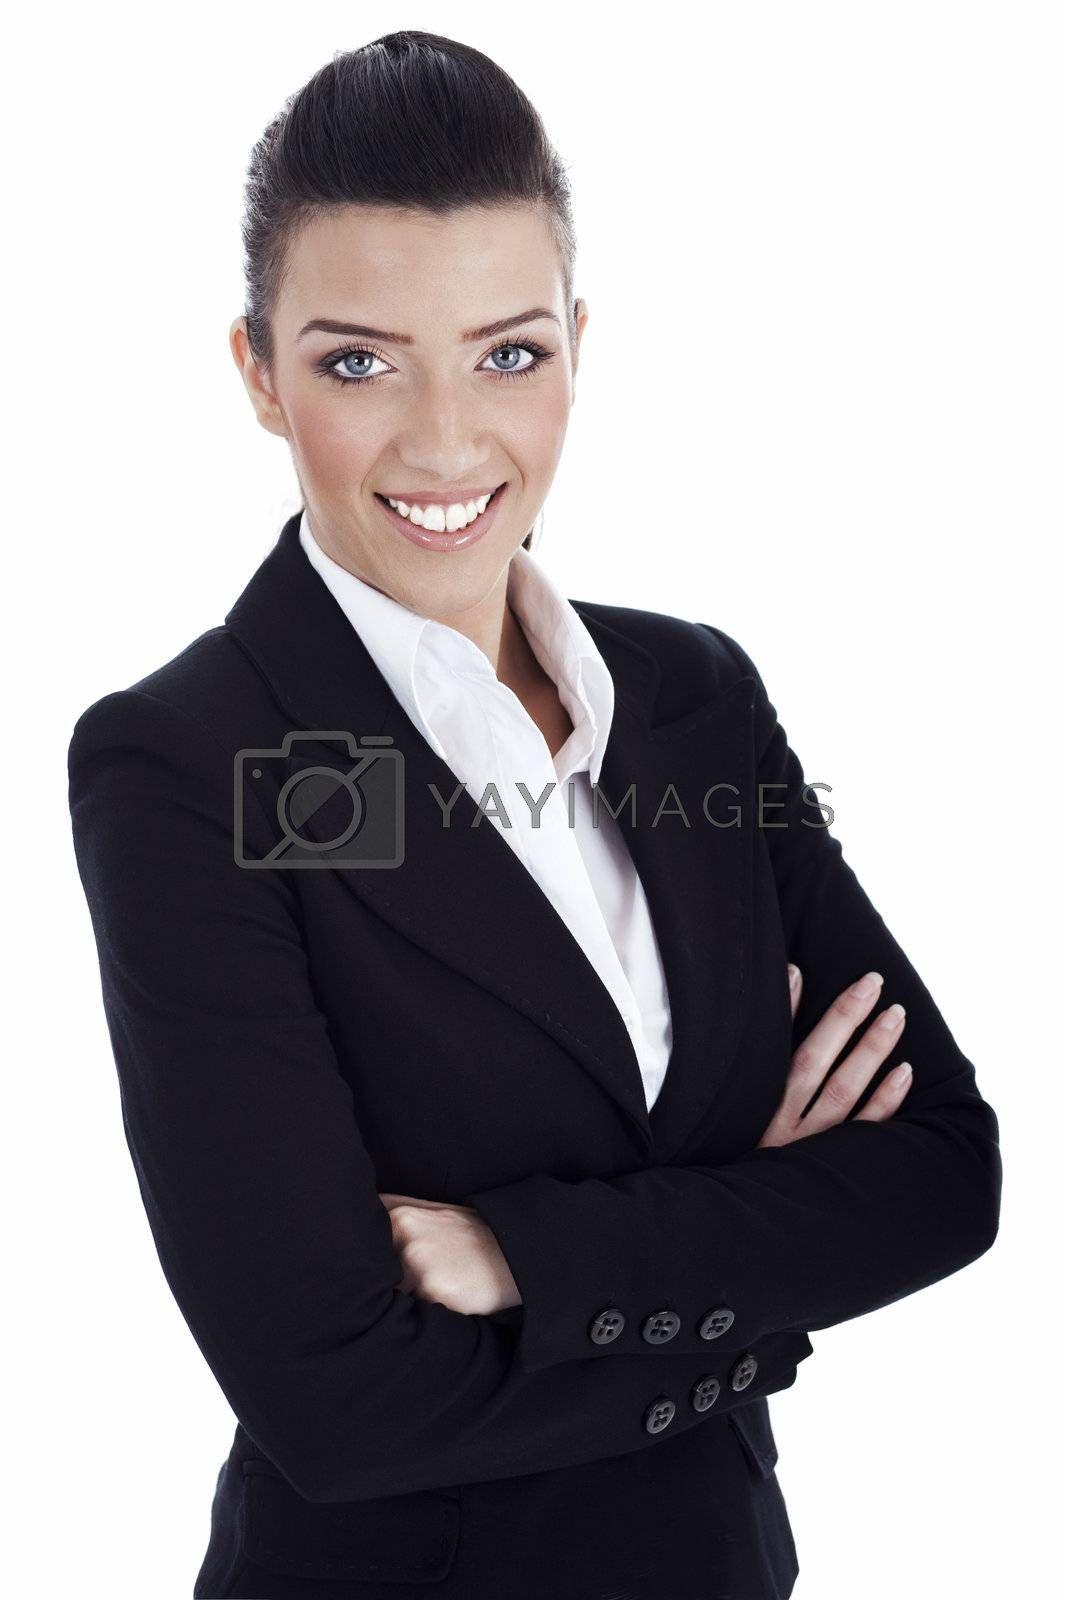 Royalty free image of Closeup smile of young professional by get4net